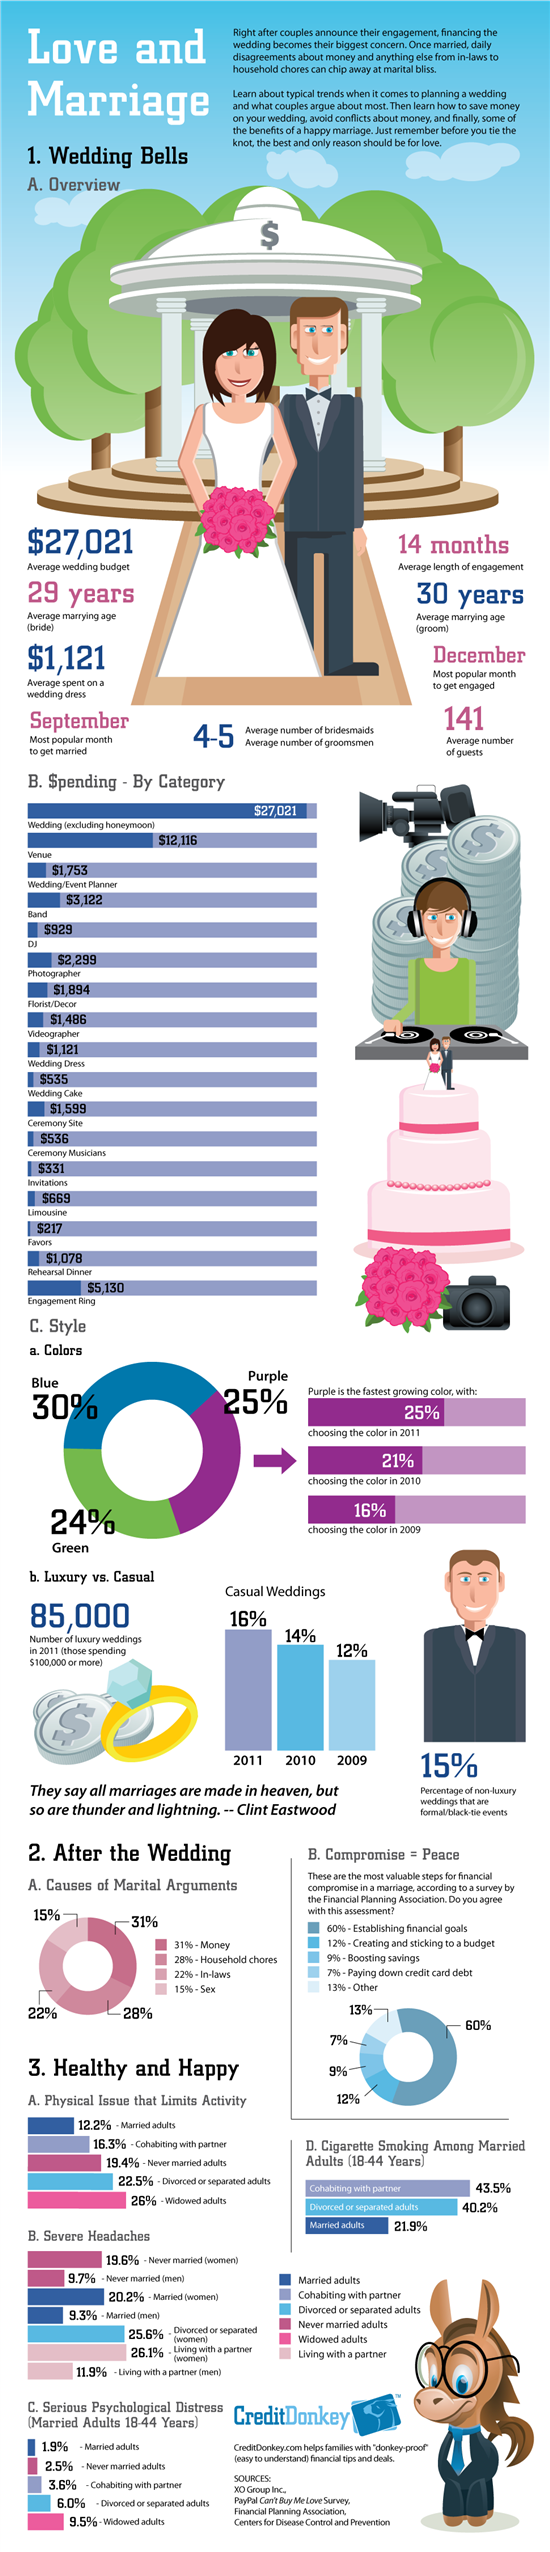 Love and Marriage #infographic #Marriage #Love #infographics #Love and Marriage